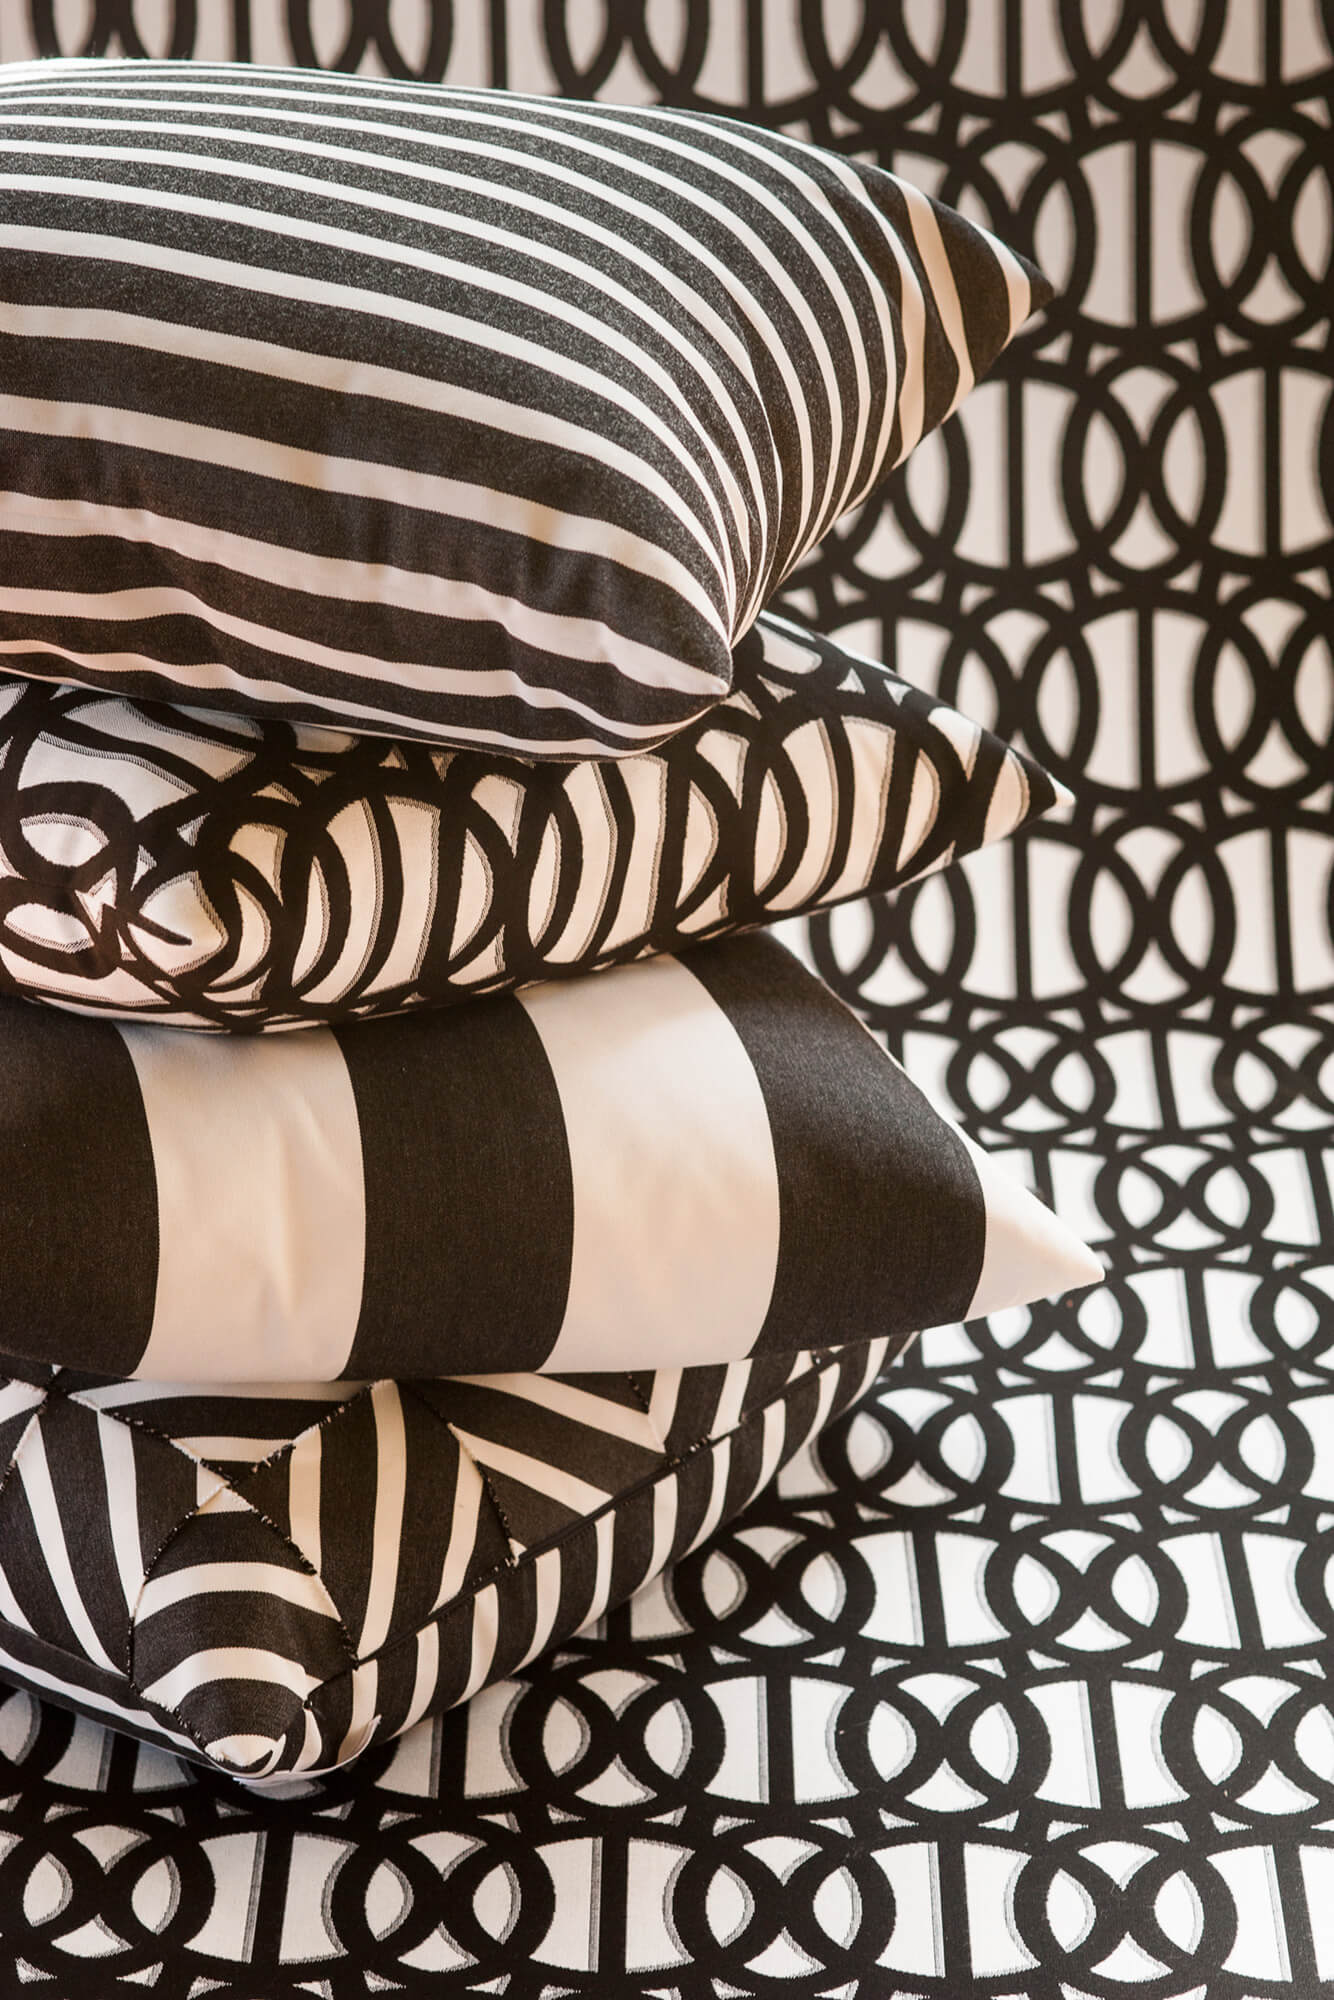 Black and white pillows stacked against a black and white jacquard background